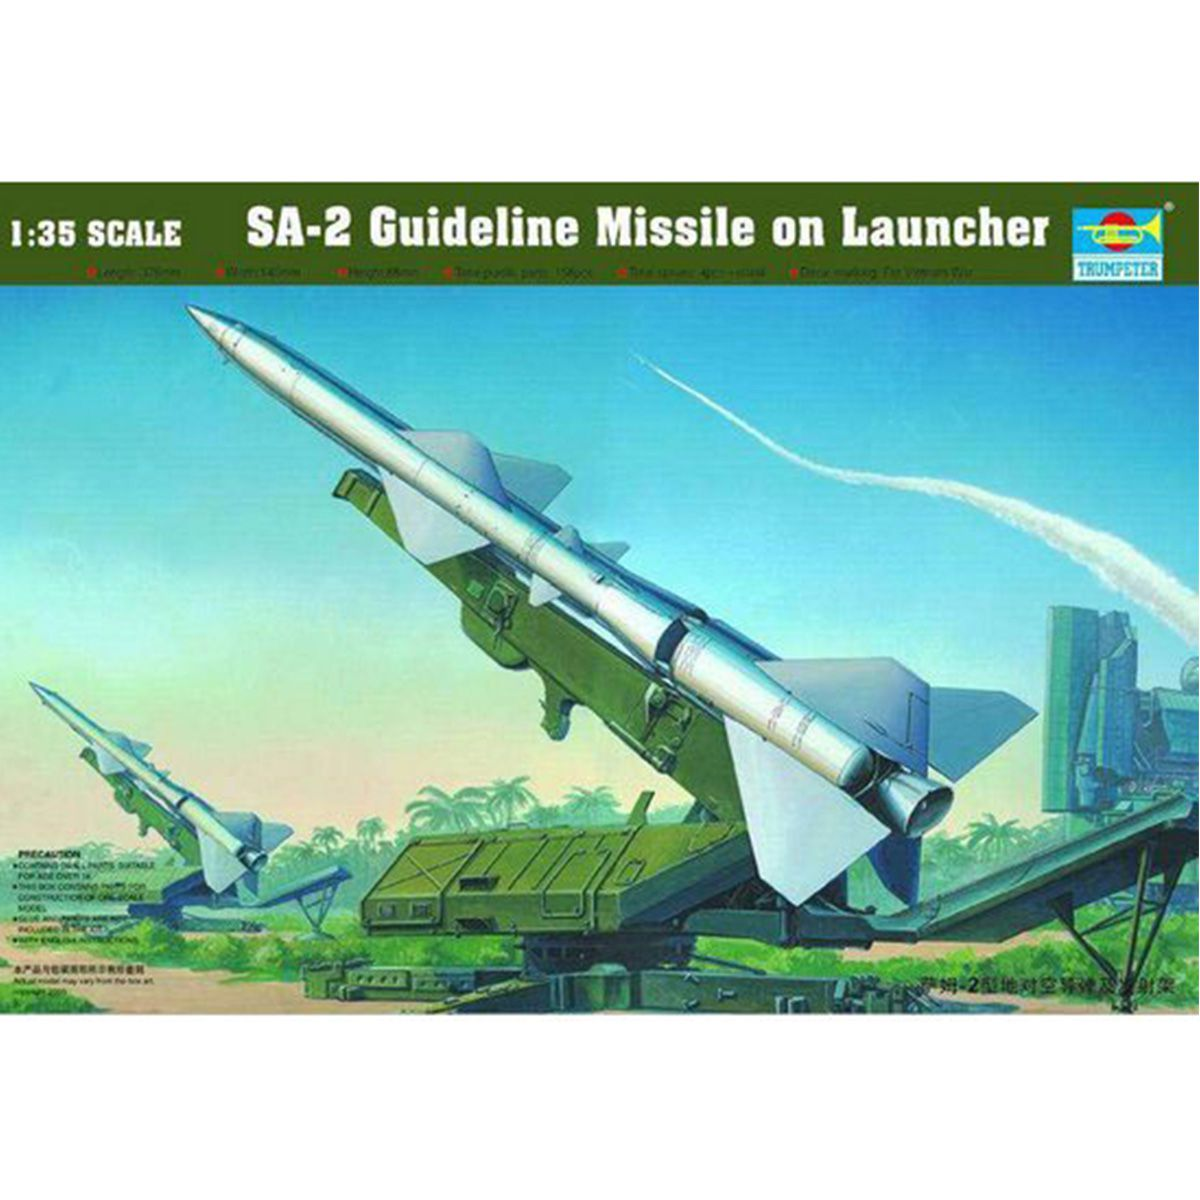 1/35 - SA-2 Guideline Missile on Launcher - Trumpeter 00206 - Ricelomshop